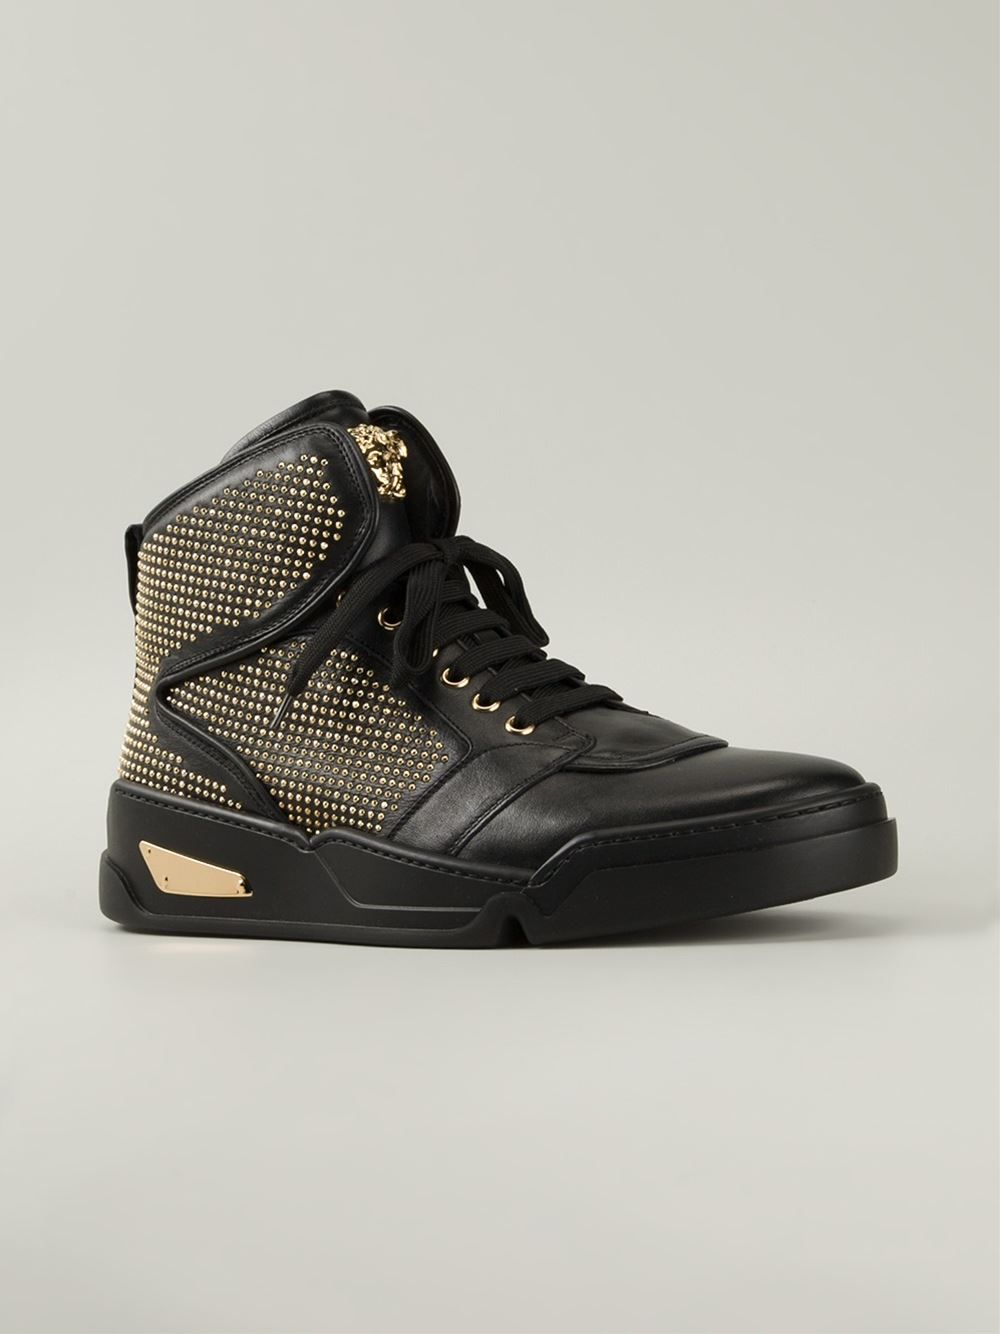 Versace Studded Hi-top Sneakers - Luisa Boutique  c2ce61e472532